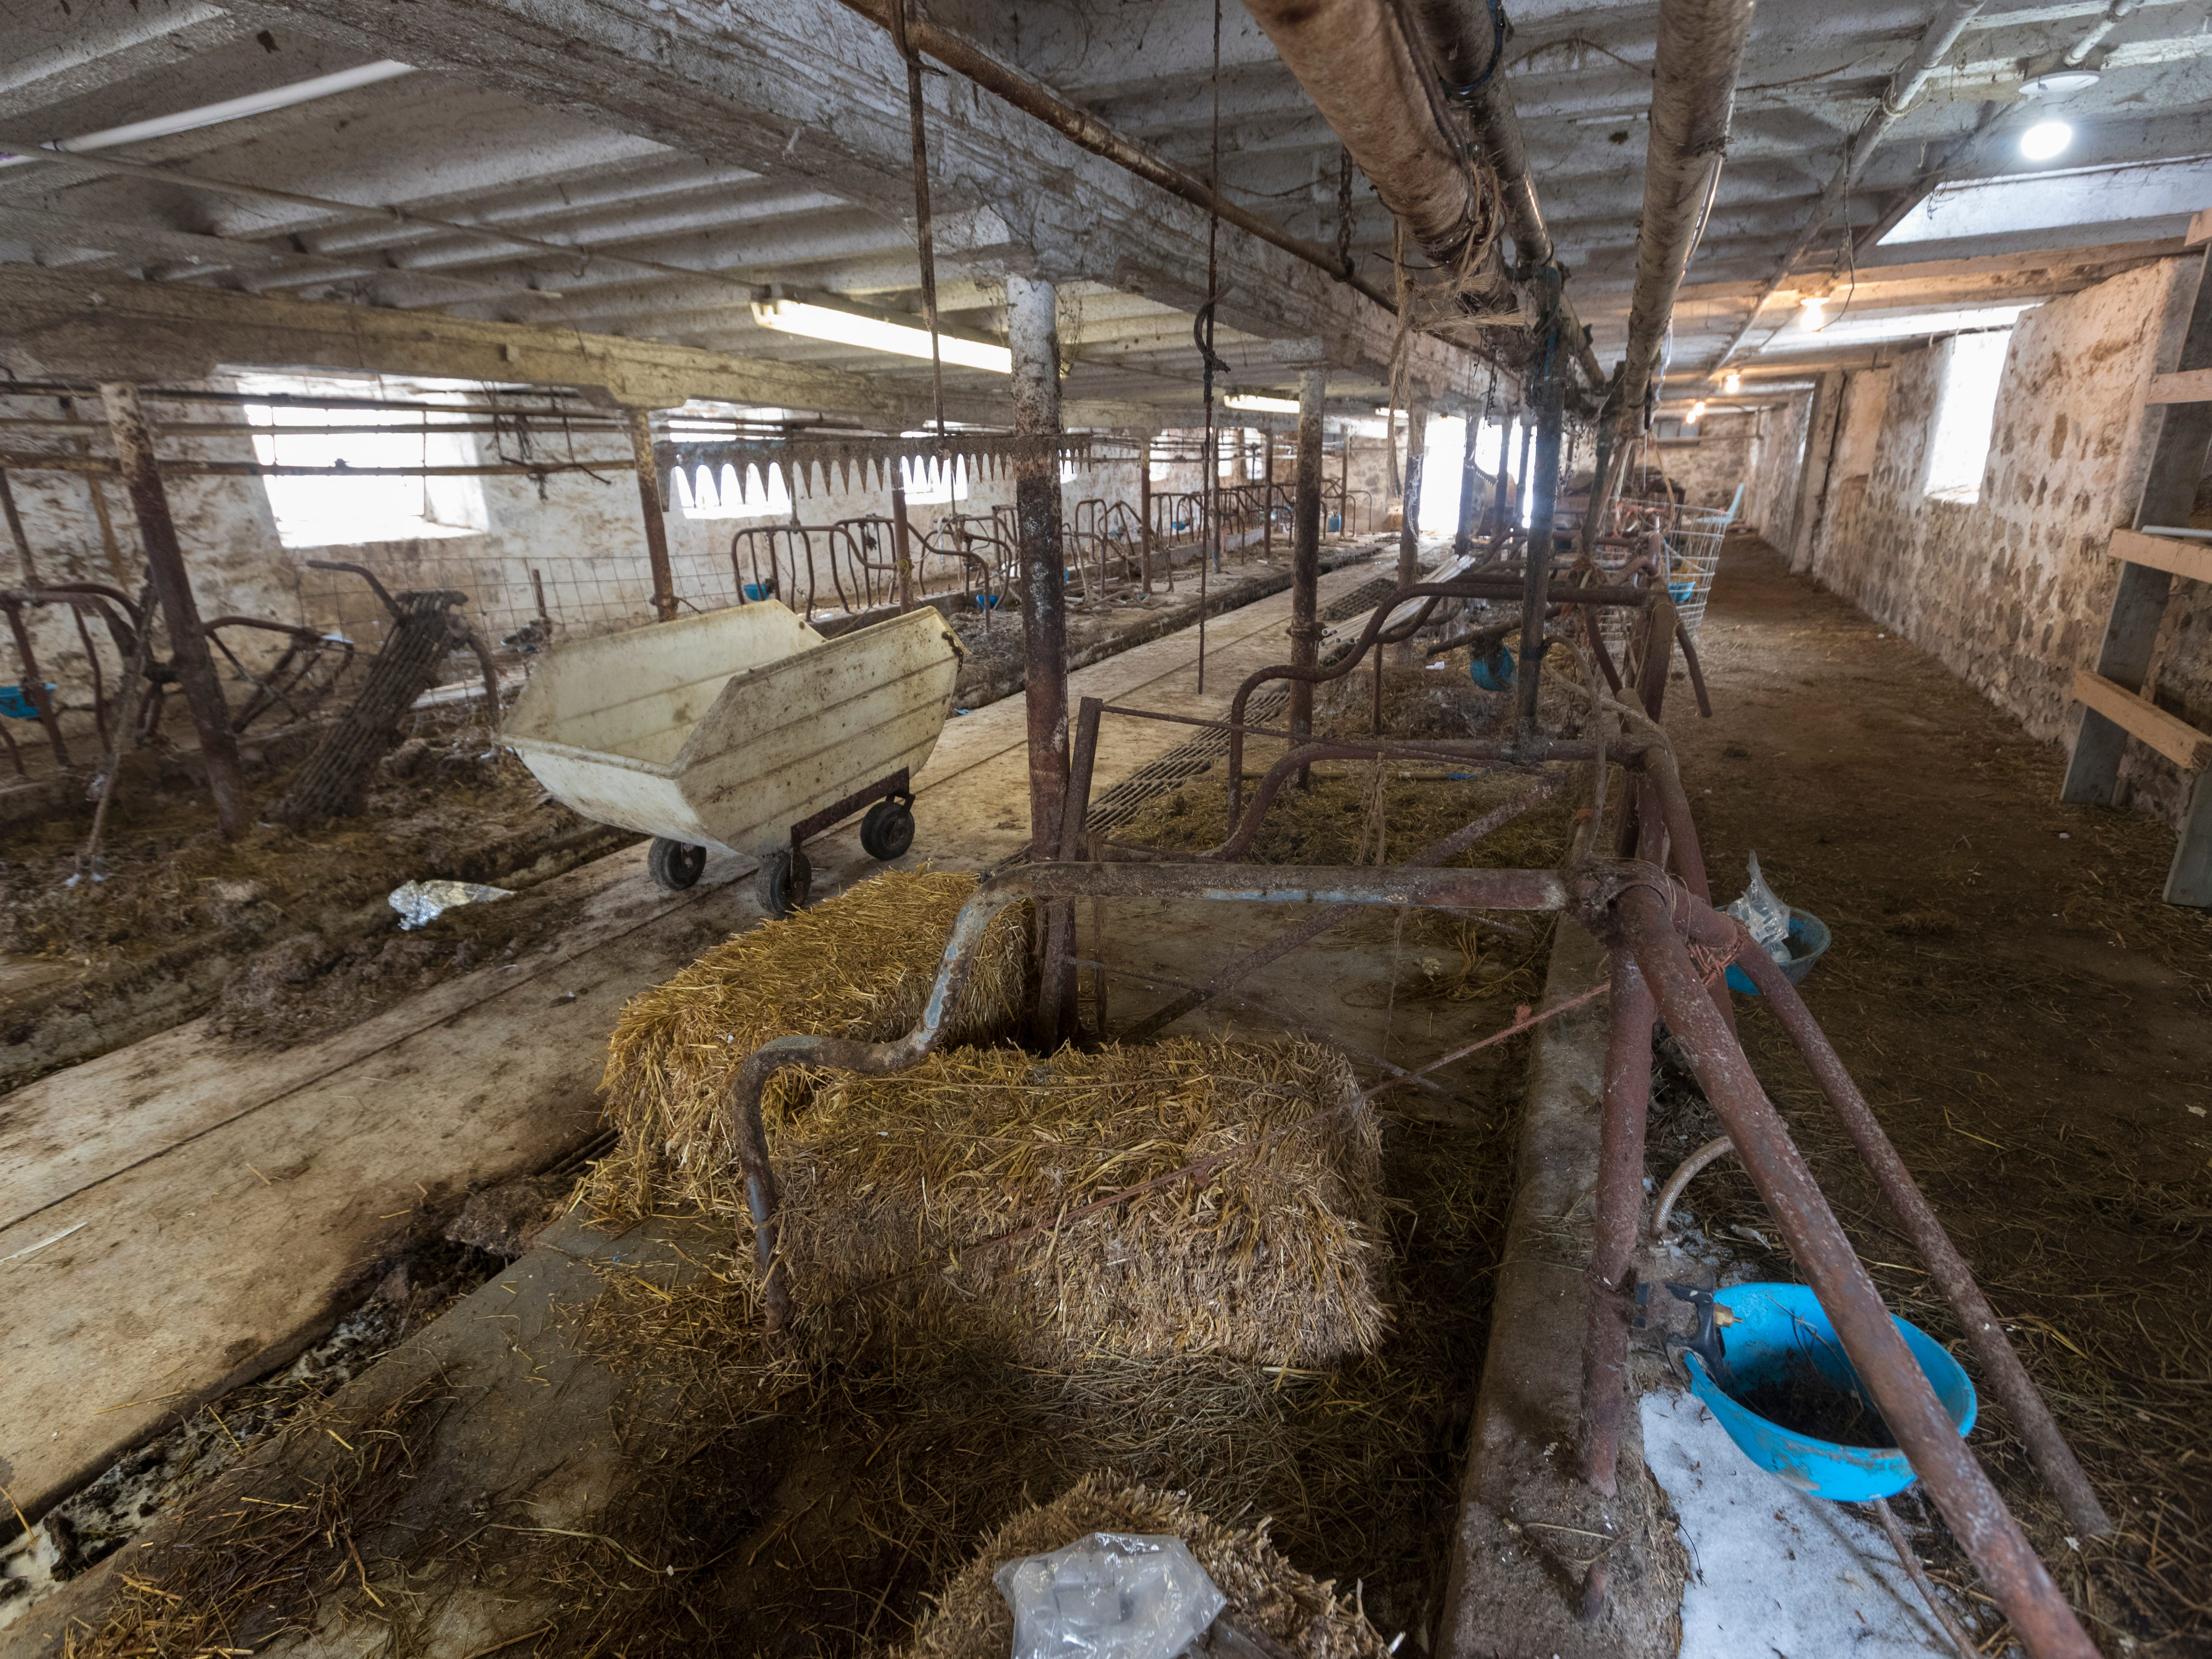 The barn has 44 stalls. The last time a dairy herd was at the farm was in December 2017.